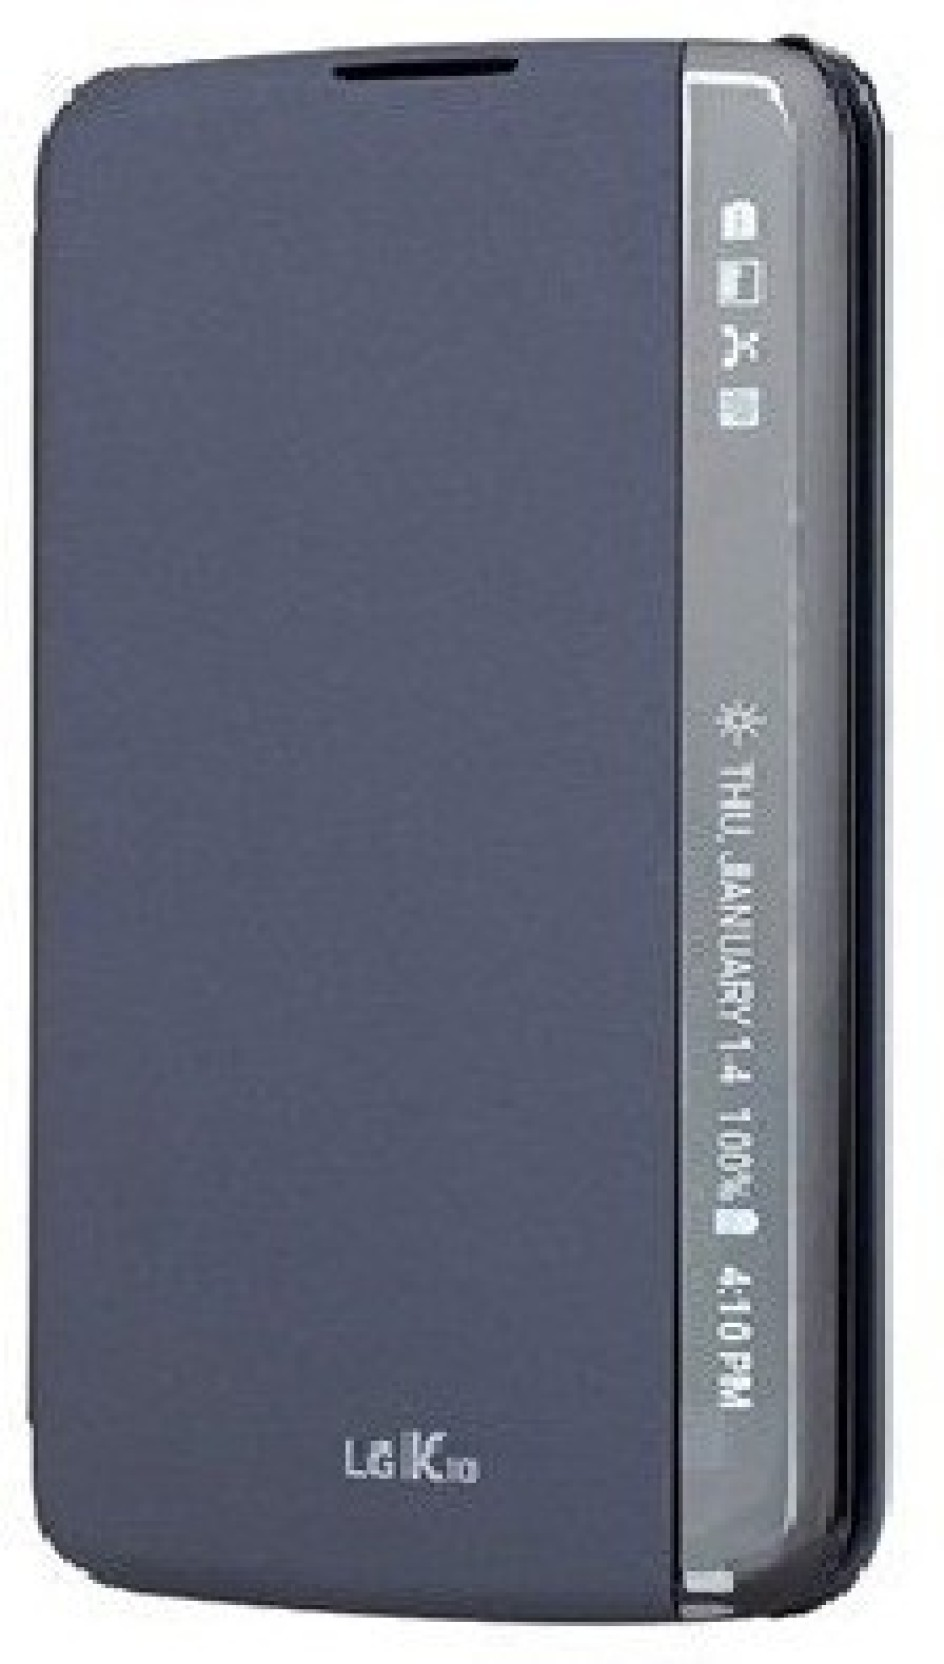 Helix Flip Cover For Lg Stylus 2 K520dy Smartphone 16gb Add To Cart